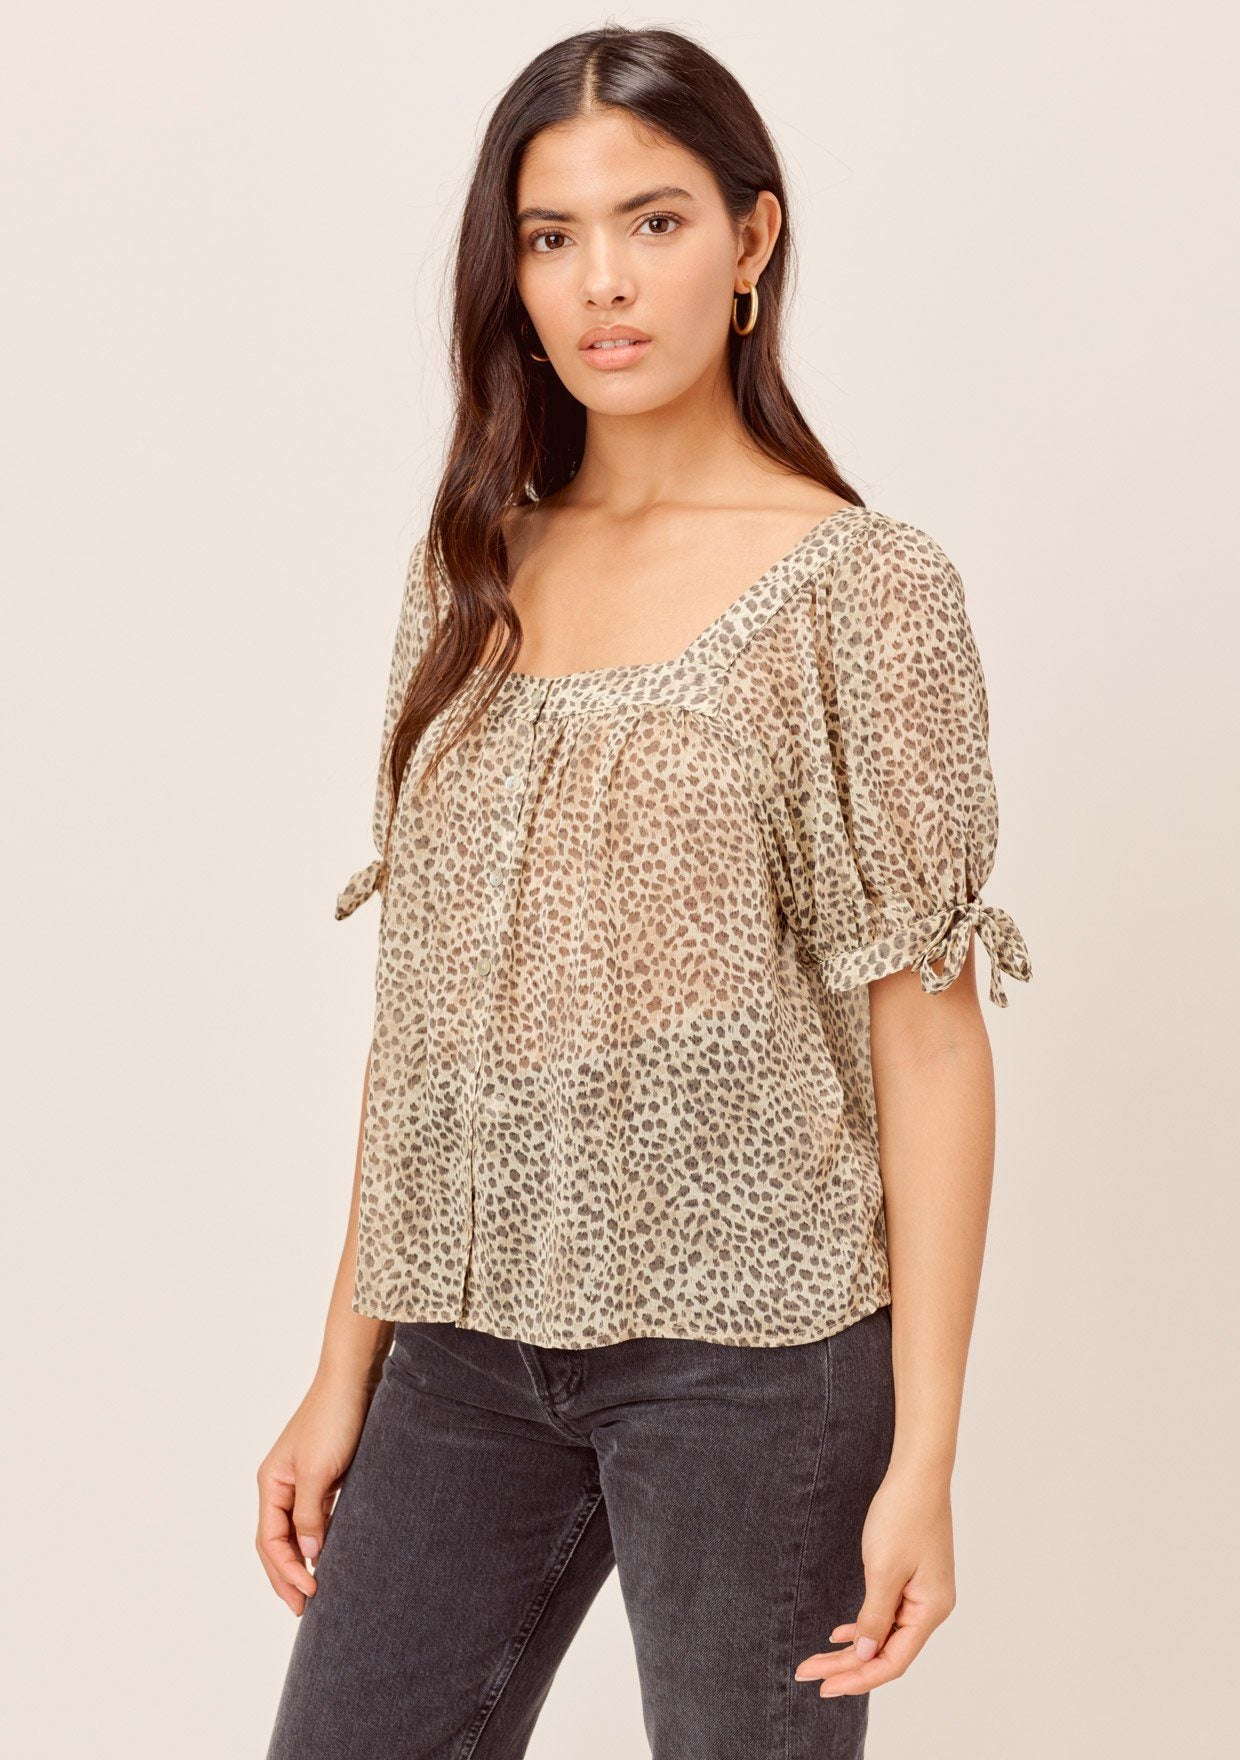 [Color: Natural] Lovestitch natural Animal printed, sheer, short sleeve button-up top with square neckline and tie sleeve detail.